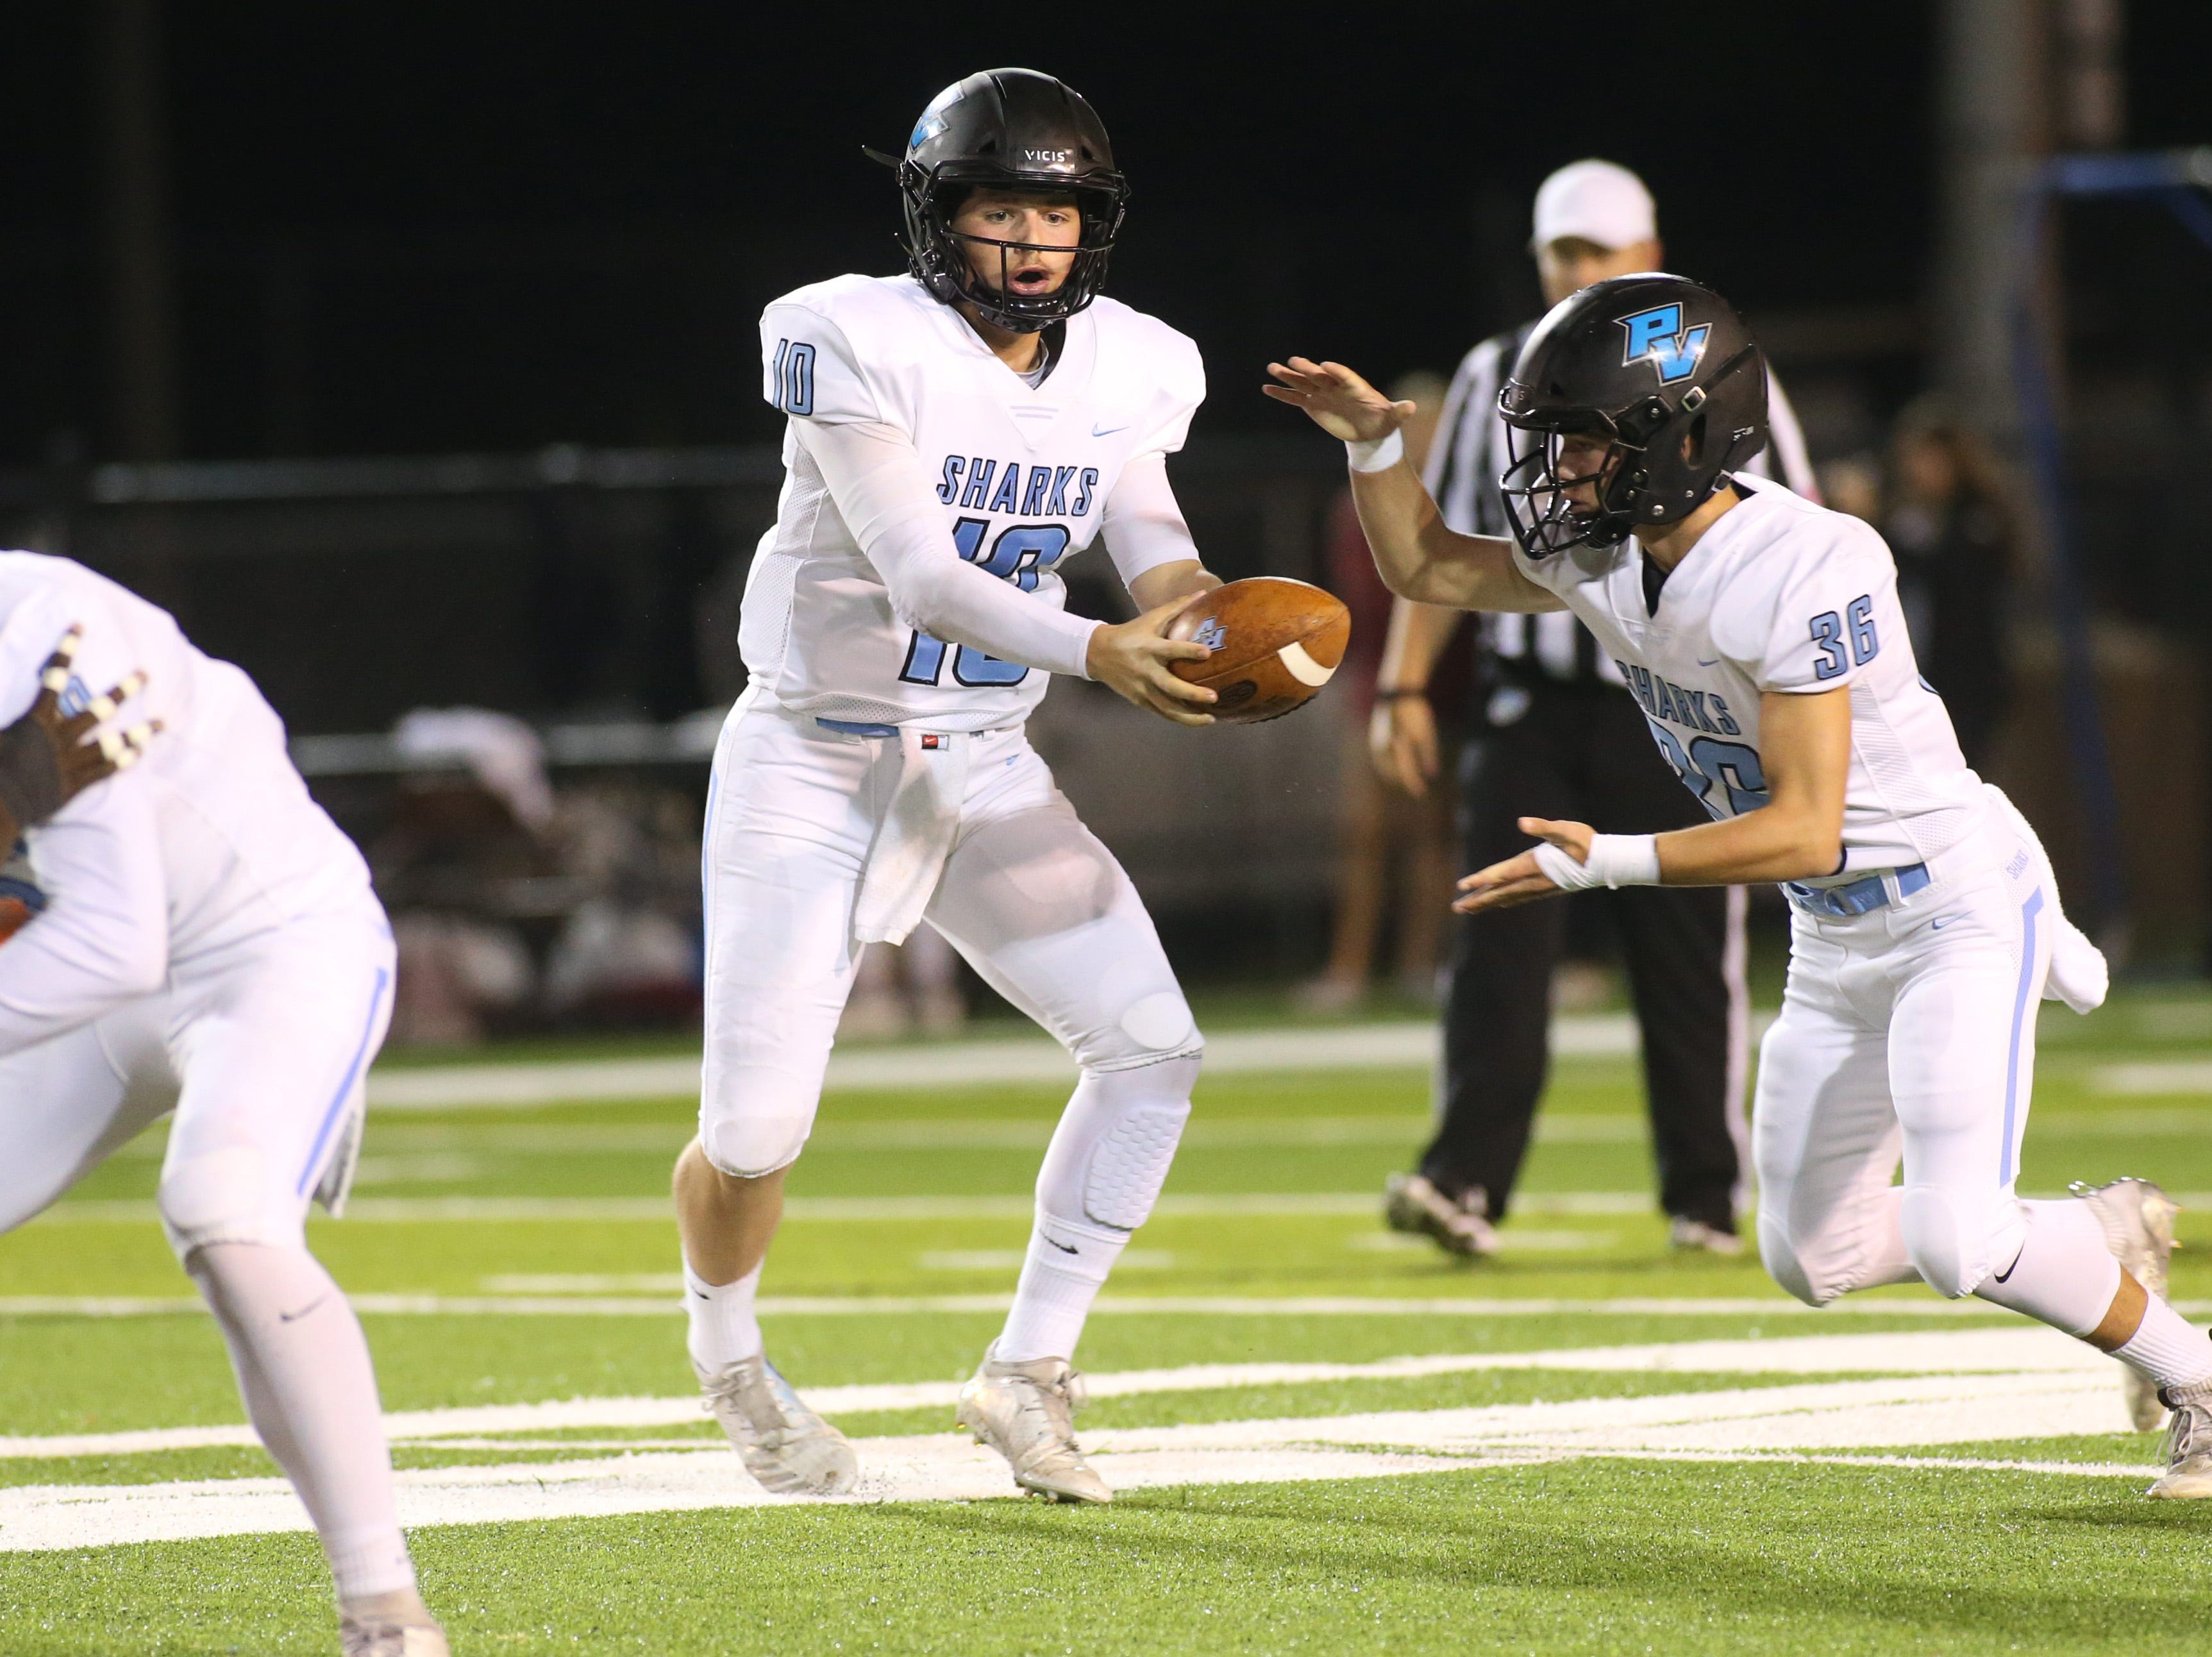 Ponte Vedra quarterback Jack Murrah (10) hands off the ball to running back Campbell Parker (36) as the Ponte Vedra Sharks face off against the Godby Cougars, in the Region 1-5A quarterfinal high school football playoff game at Gene Cox Stadium, Friday, Nov. 9, 2018.